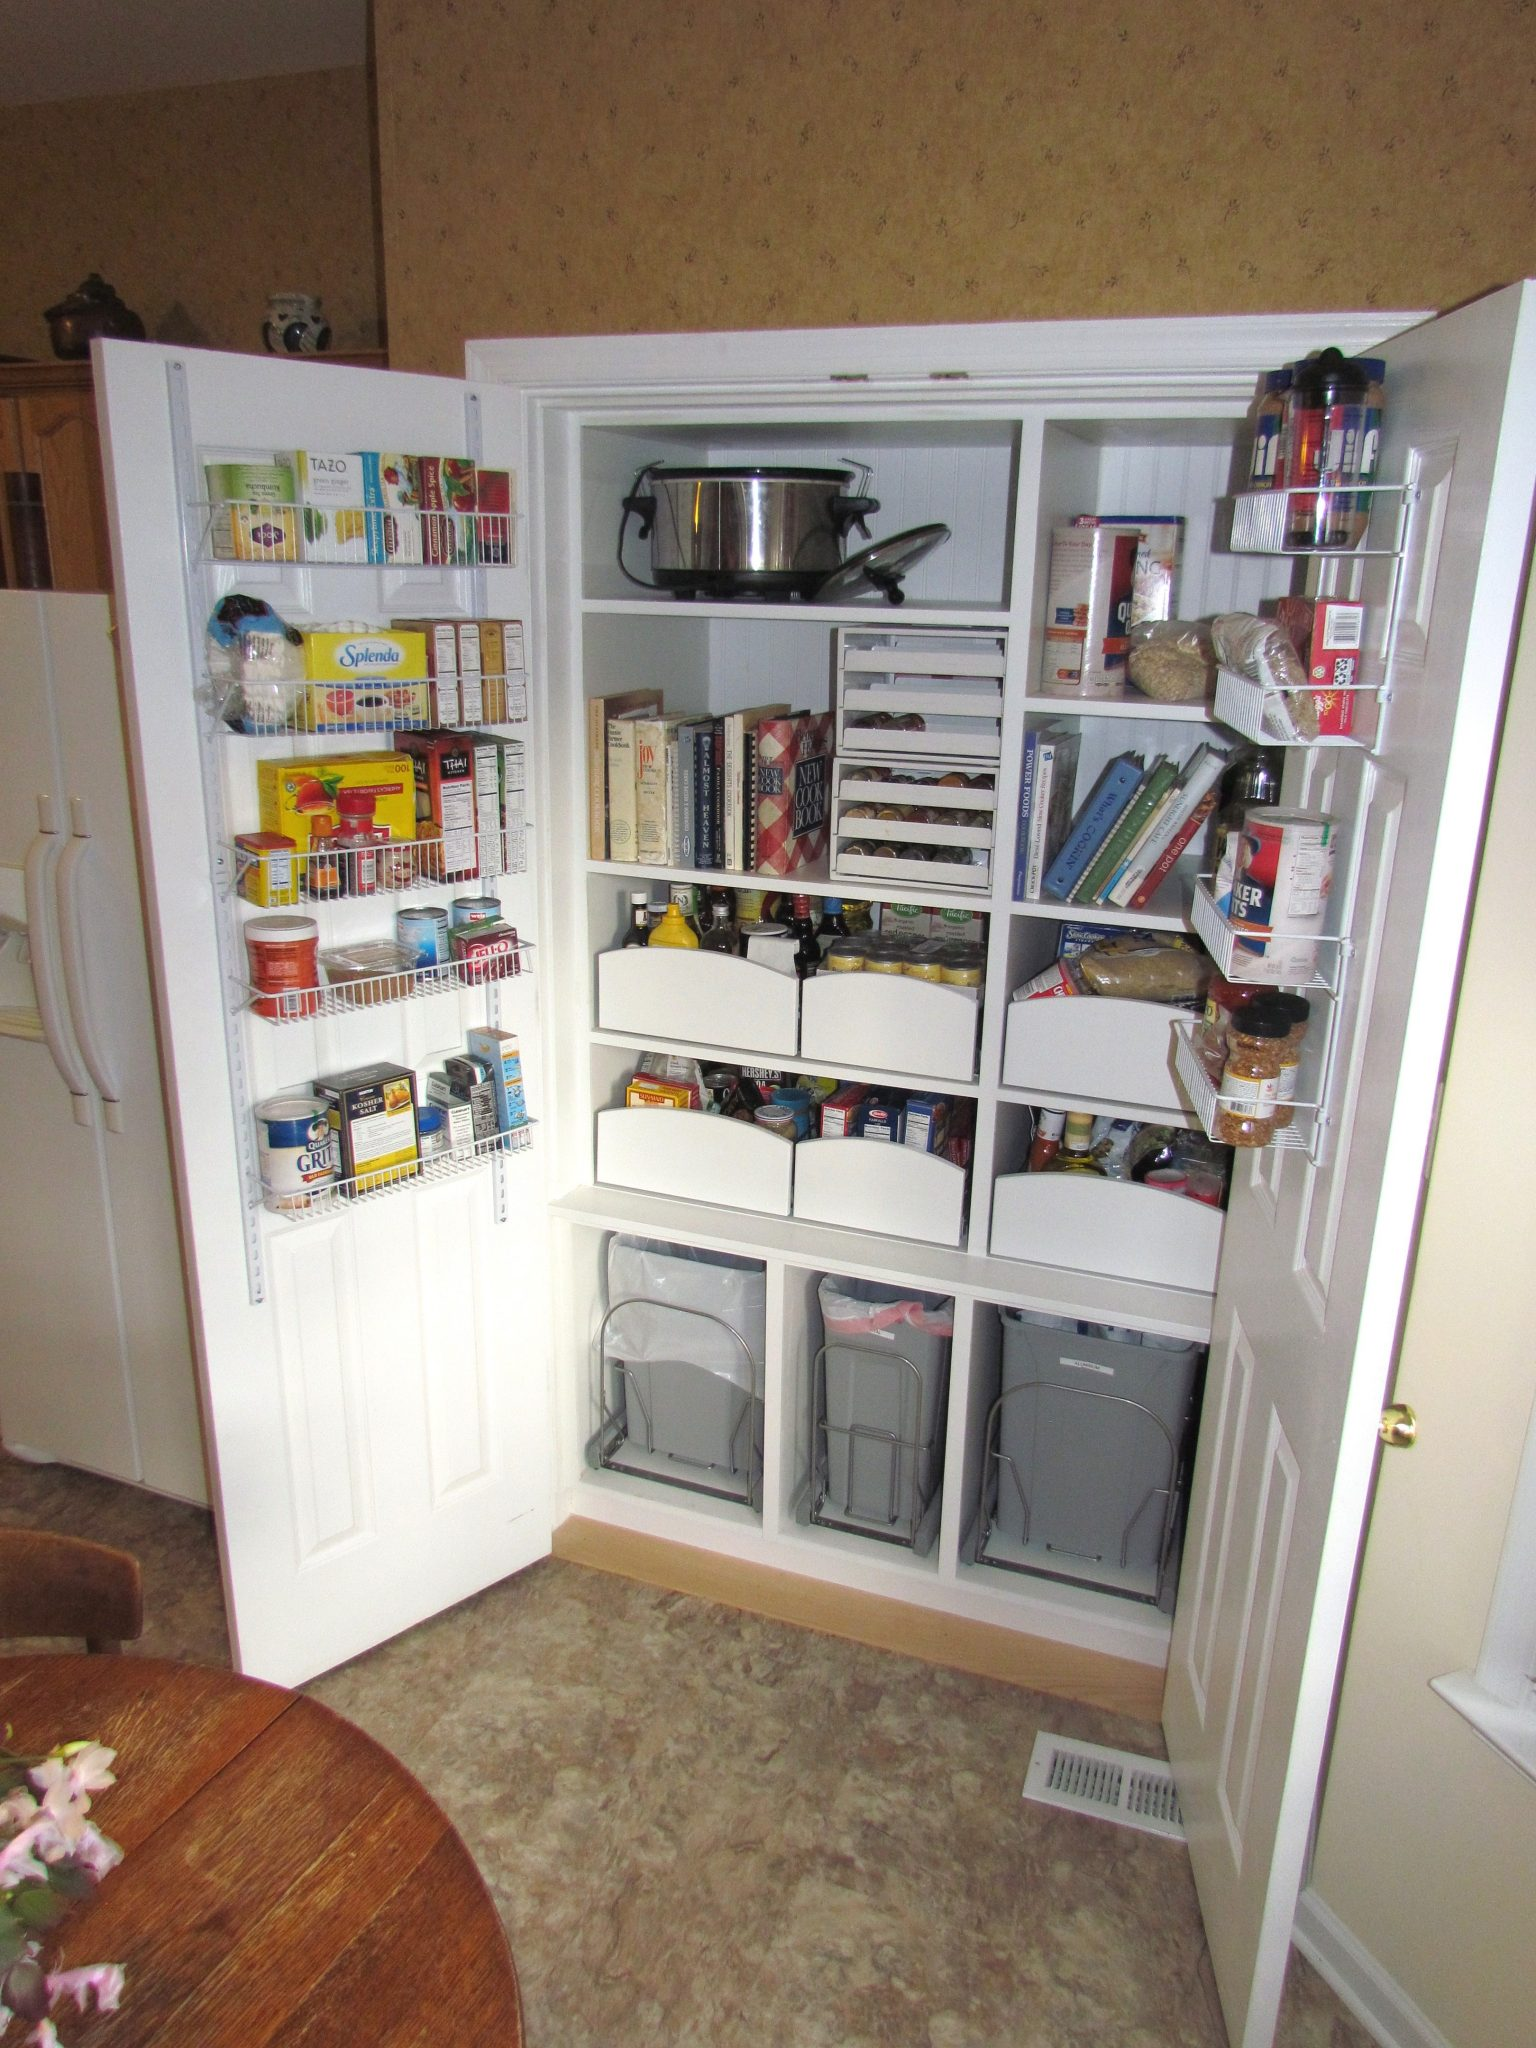 Production Home Upgrade Renovation pantry